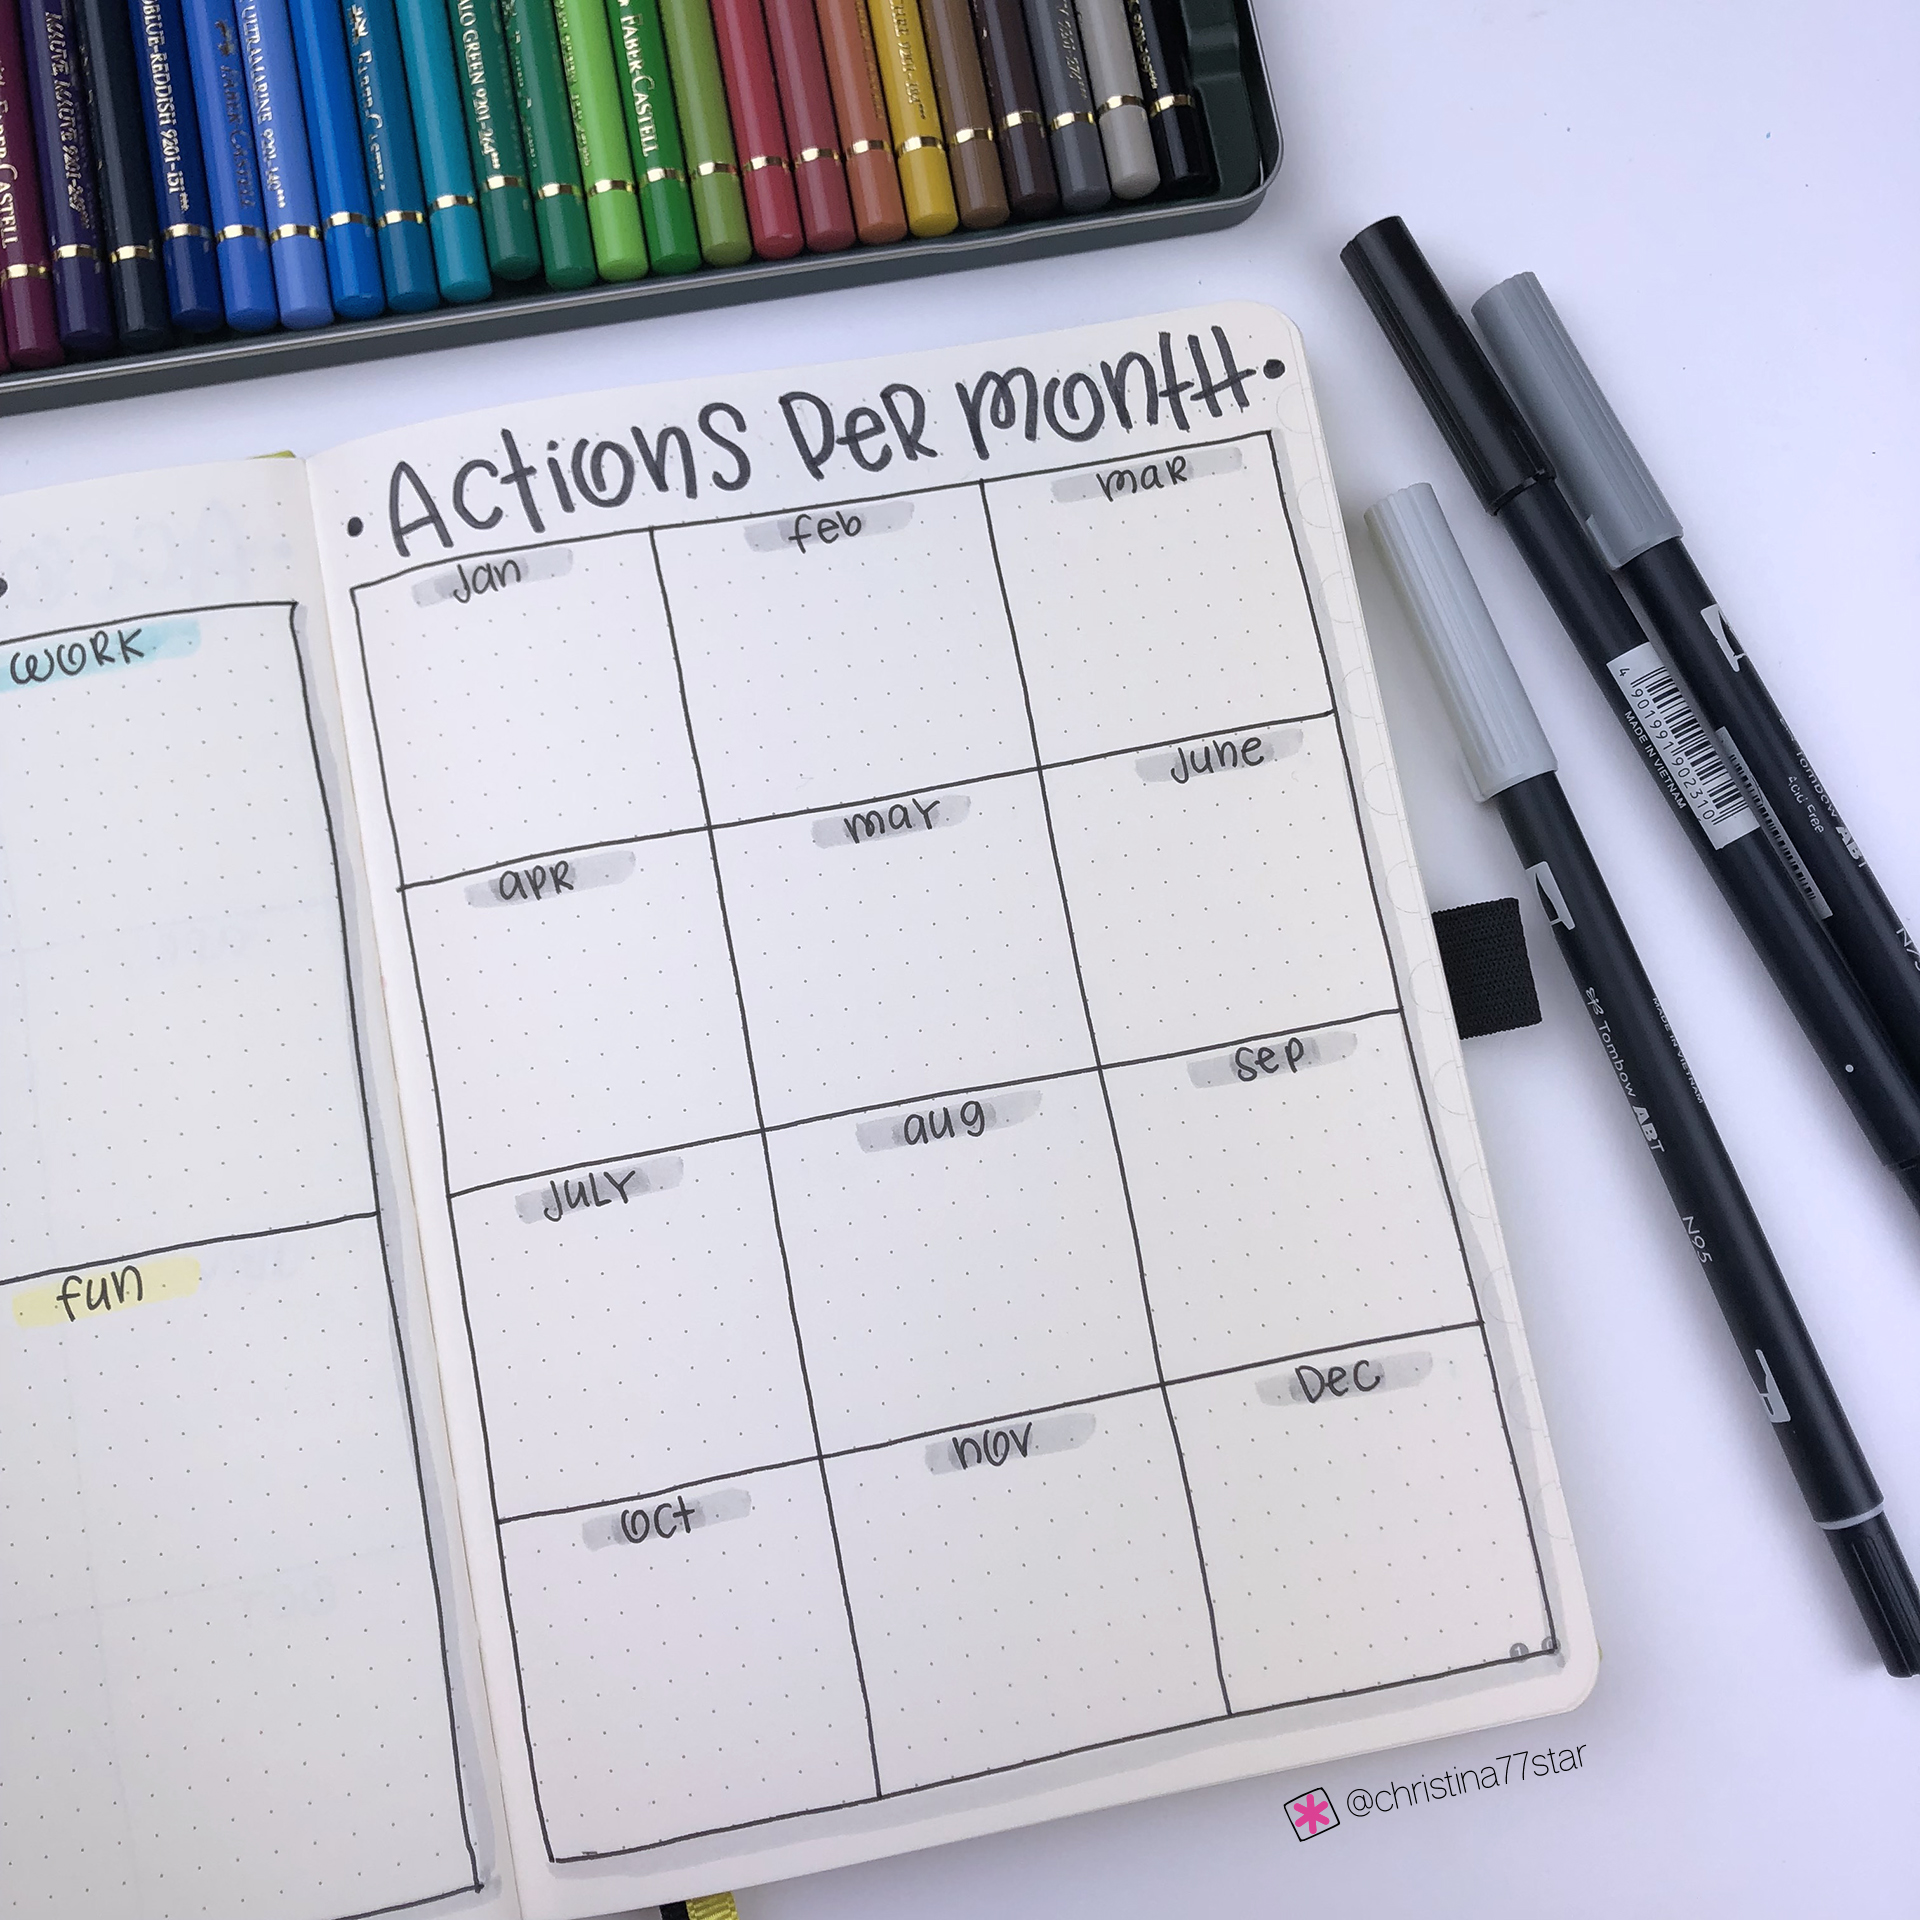 2019 bullet journal setup - Actions per Month - www.christina77star.net